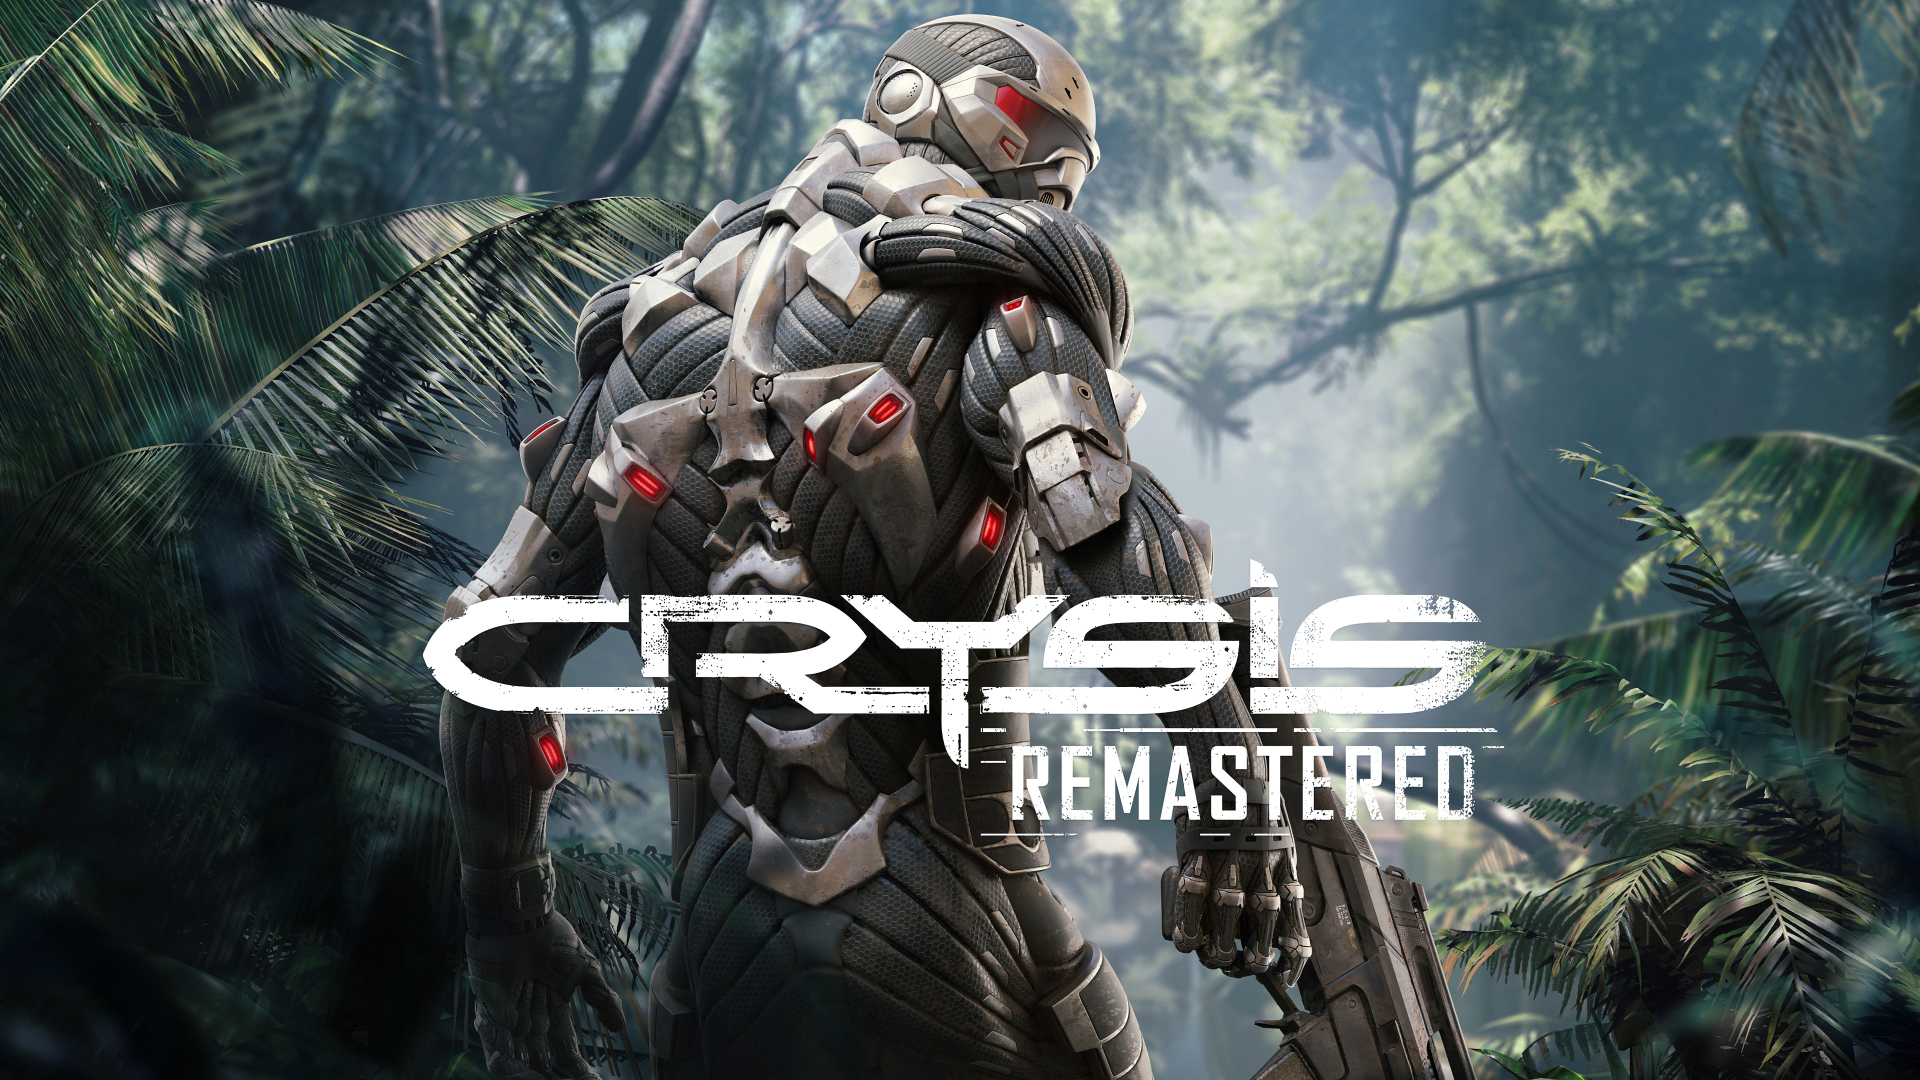 Crysis Remastered review: Yes, the Switch can run it